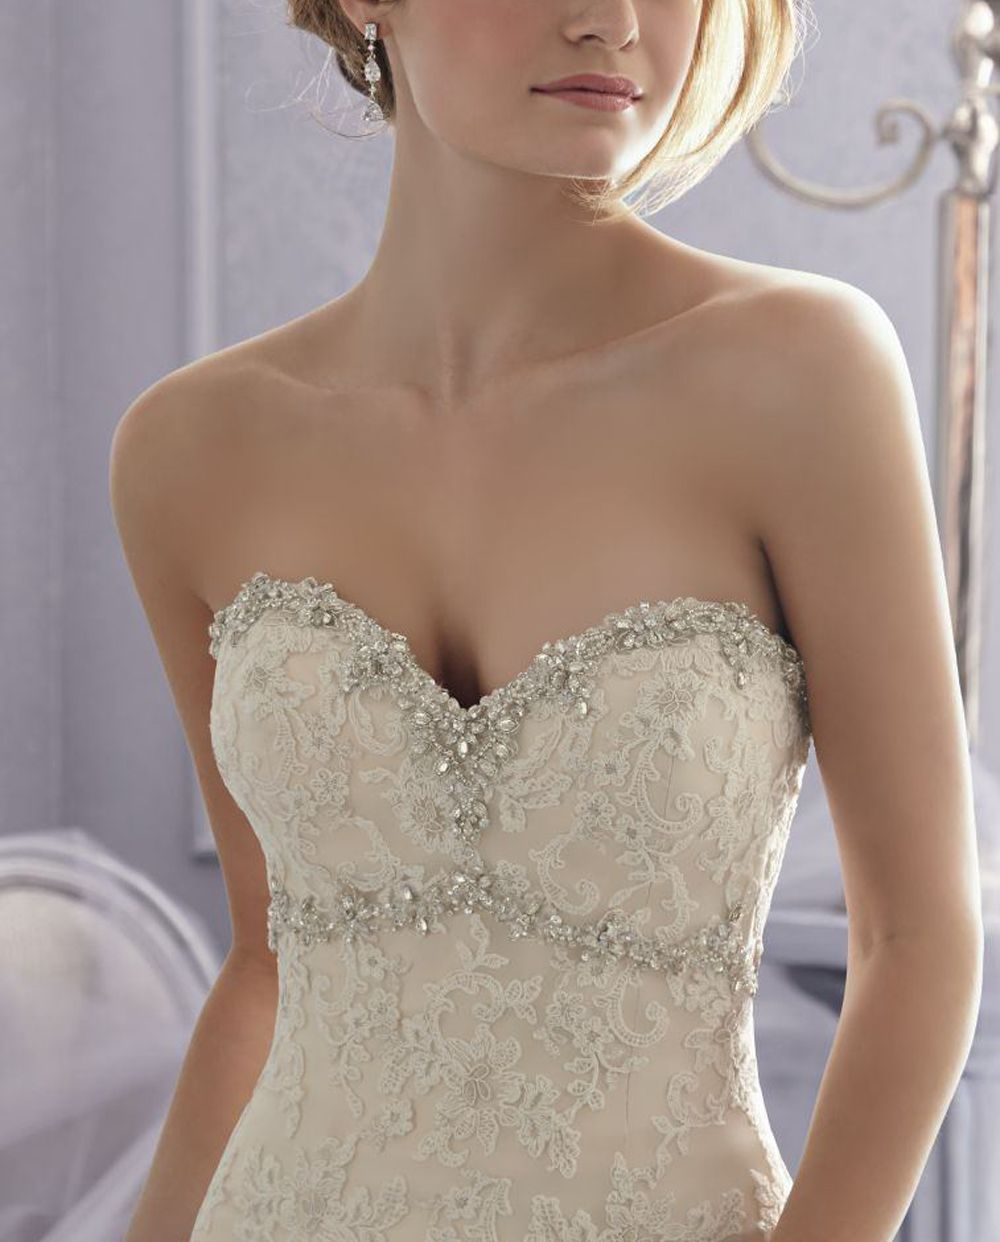 Gold belt for wedding dress  High quality lace and organza With inside bra pads cm width secure